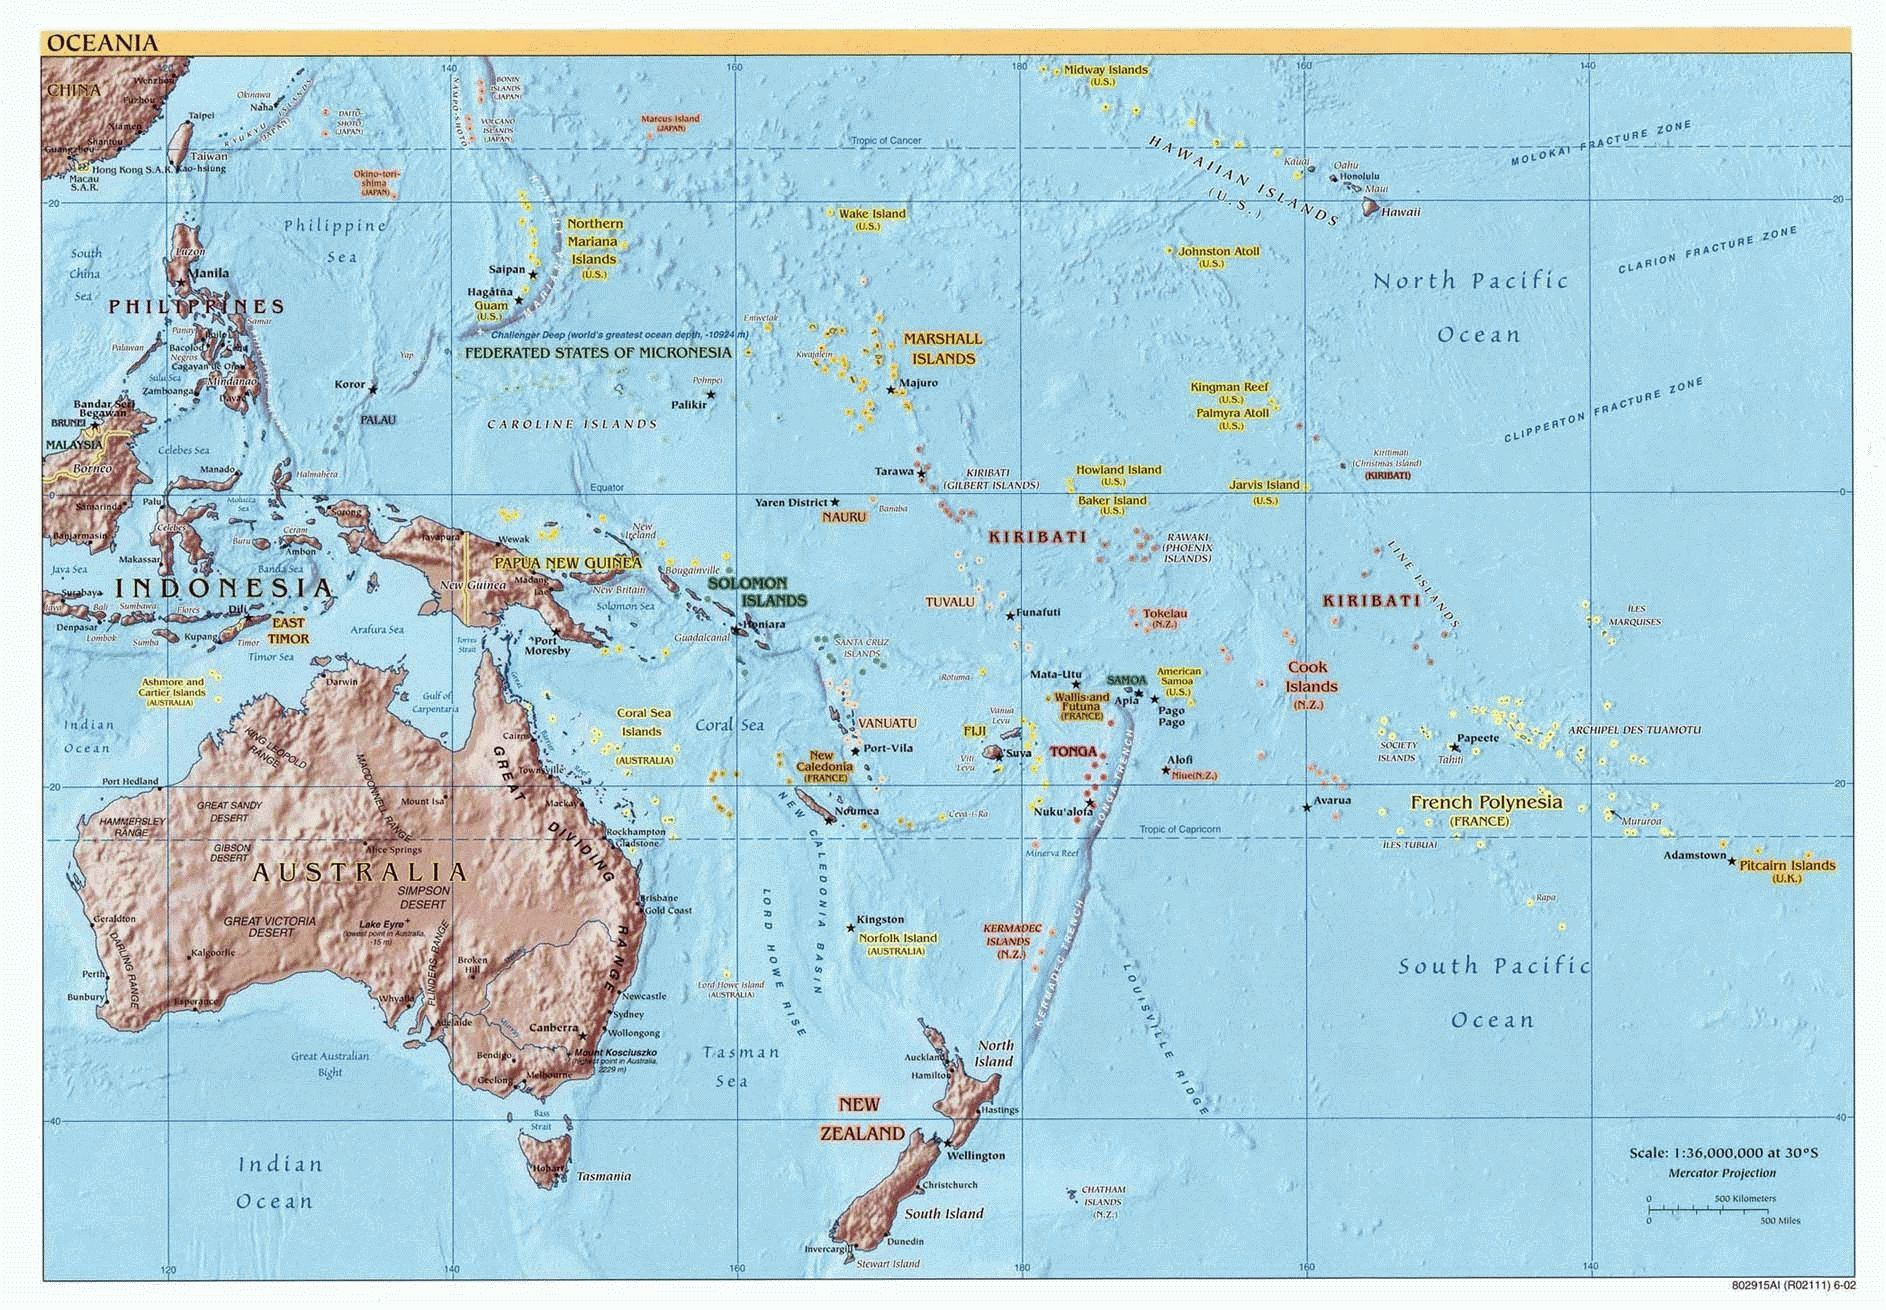 Map of Oceania (Reference), 2002. Courtesy of, The World Factbook (http://cia.gov/cia/publications/factbook) or CIA Maps and Publications Released to the Public (http://www.cia.gov/cia/publications/mapspub), Central Intelligence Agency (CIA), Government of the United States of America (USA); and the Perry-Castañeda Map Collection (http://www.lib.utexas.edu/maps), Perry-Castañeda Library, The General Libraries, University of Texas at Austin, Austin, Texas, USA.